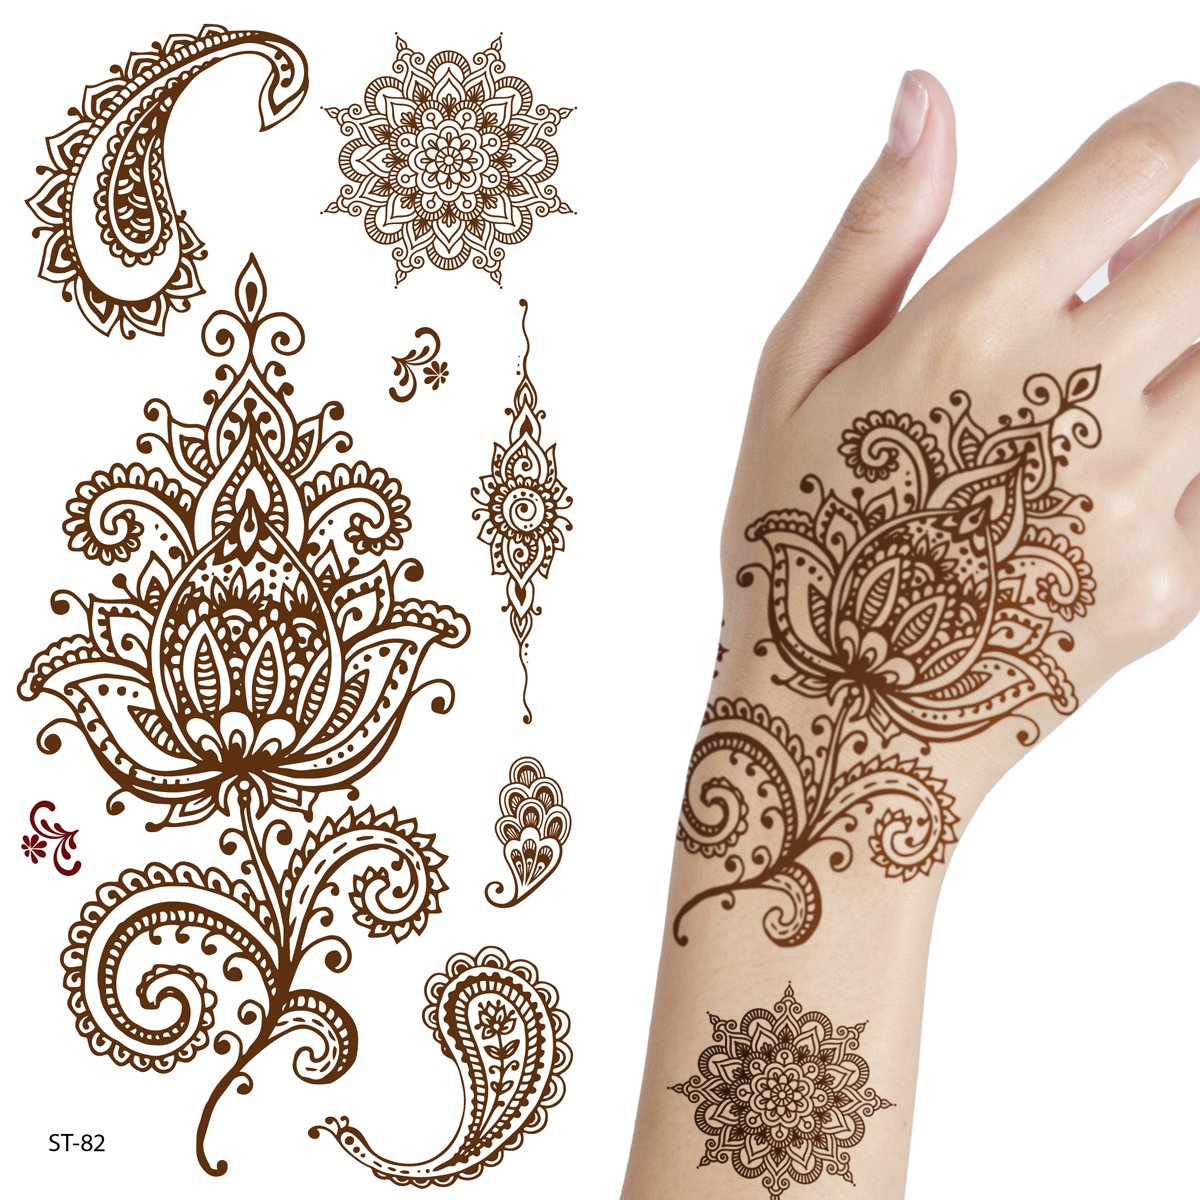 Amazon.com : Supperb Temporary Tattoos - Inspired Mehndi Desige ...